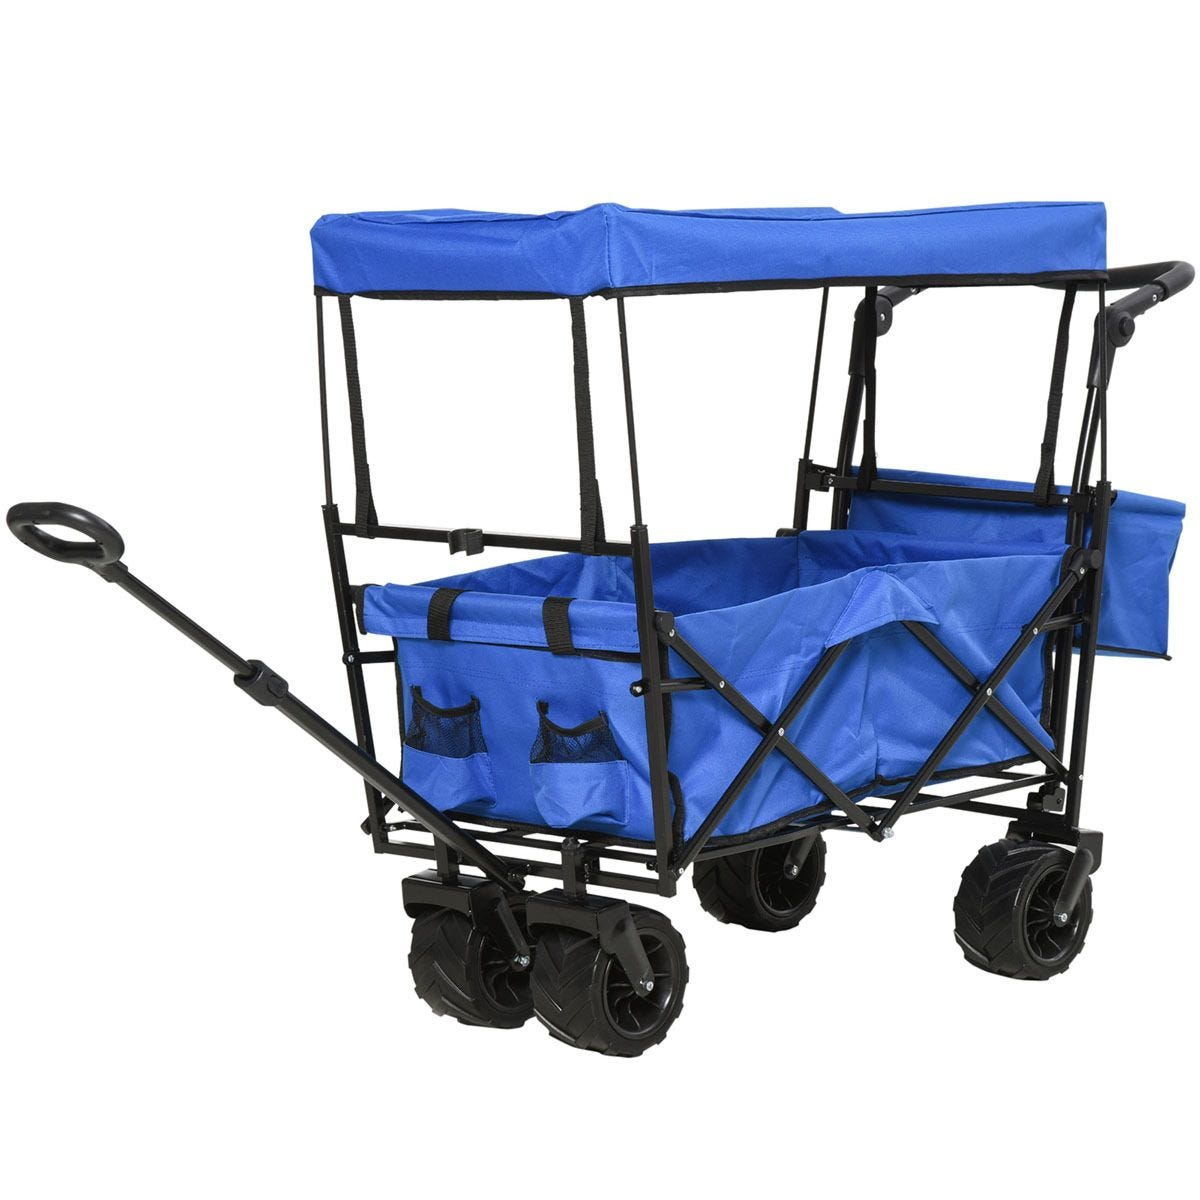 Durhand 2-Compartment Push/Pull Handle Trolley Cart - Blue